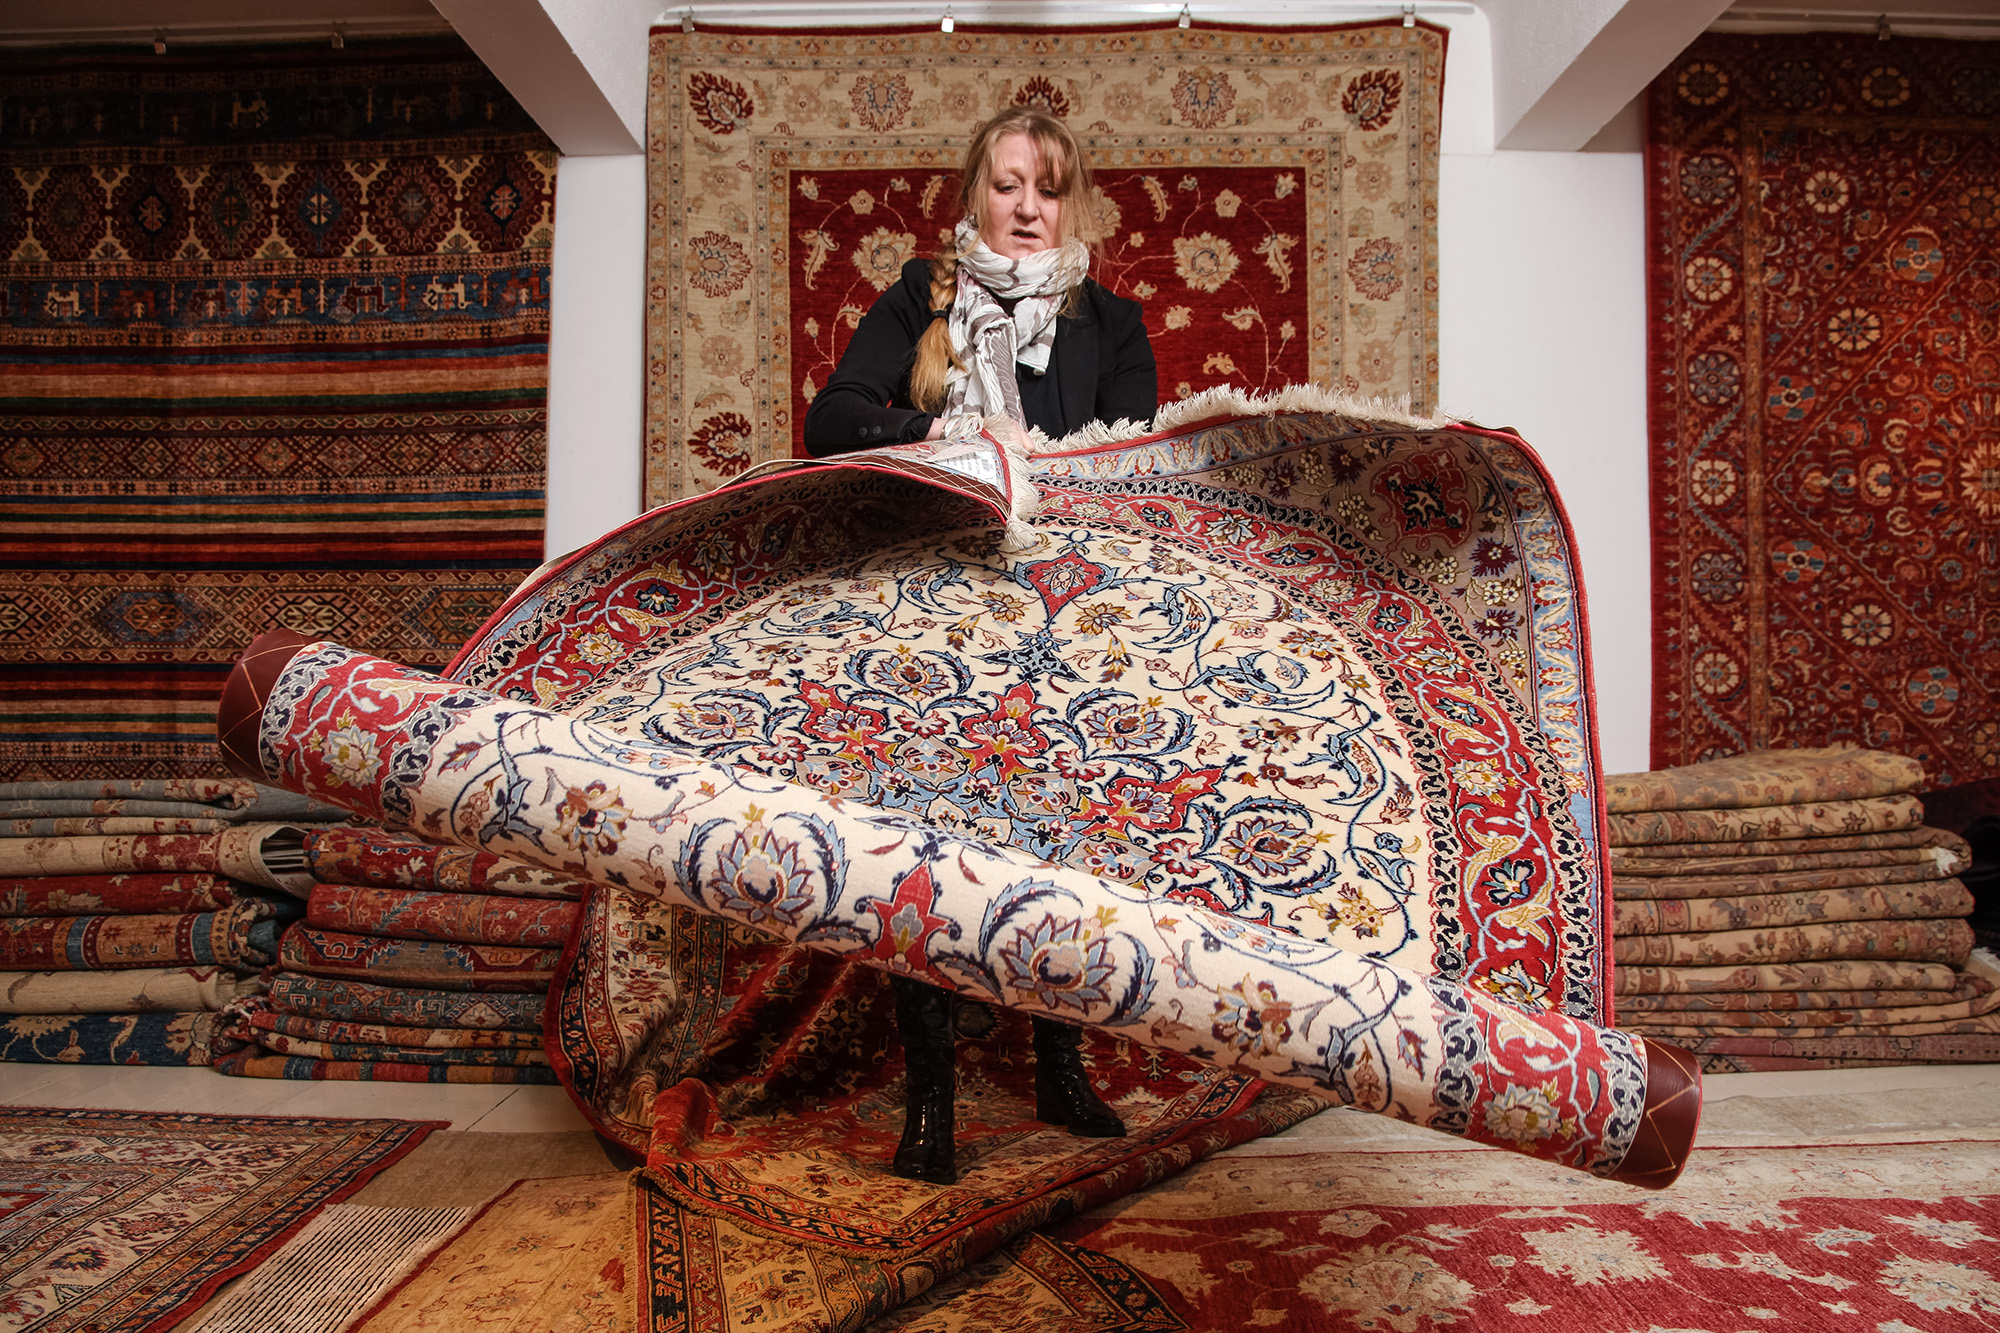 69-TAPIS-ROYAL©Augustin-Le_Gall-HAYTHAM-PICTURES-IMG_1124.jpg